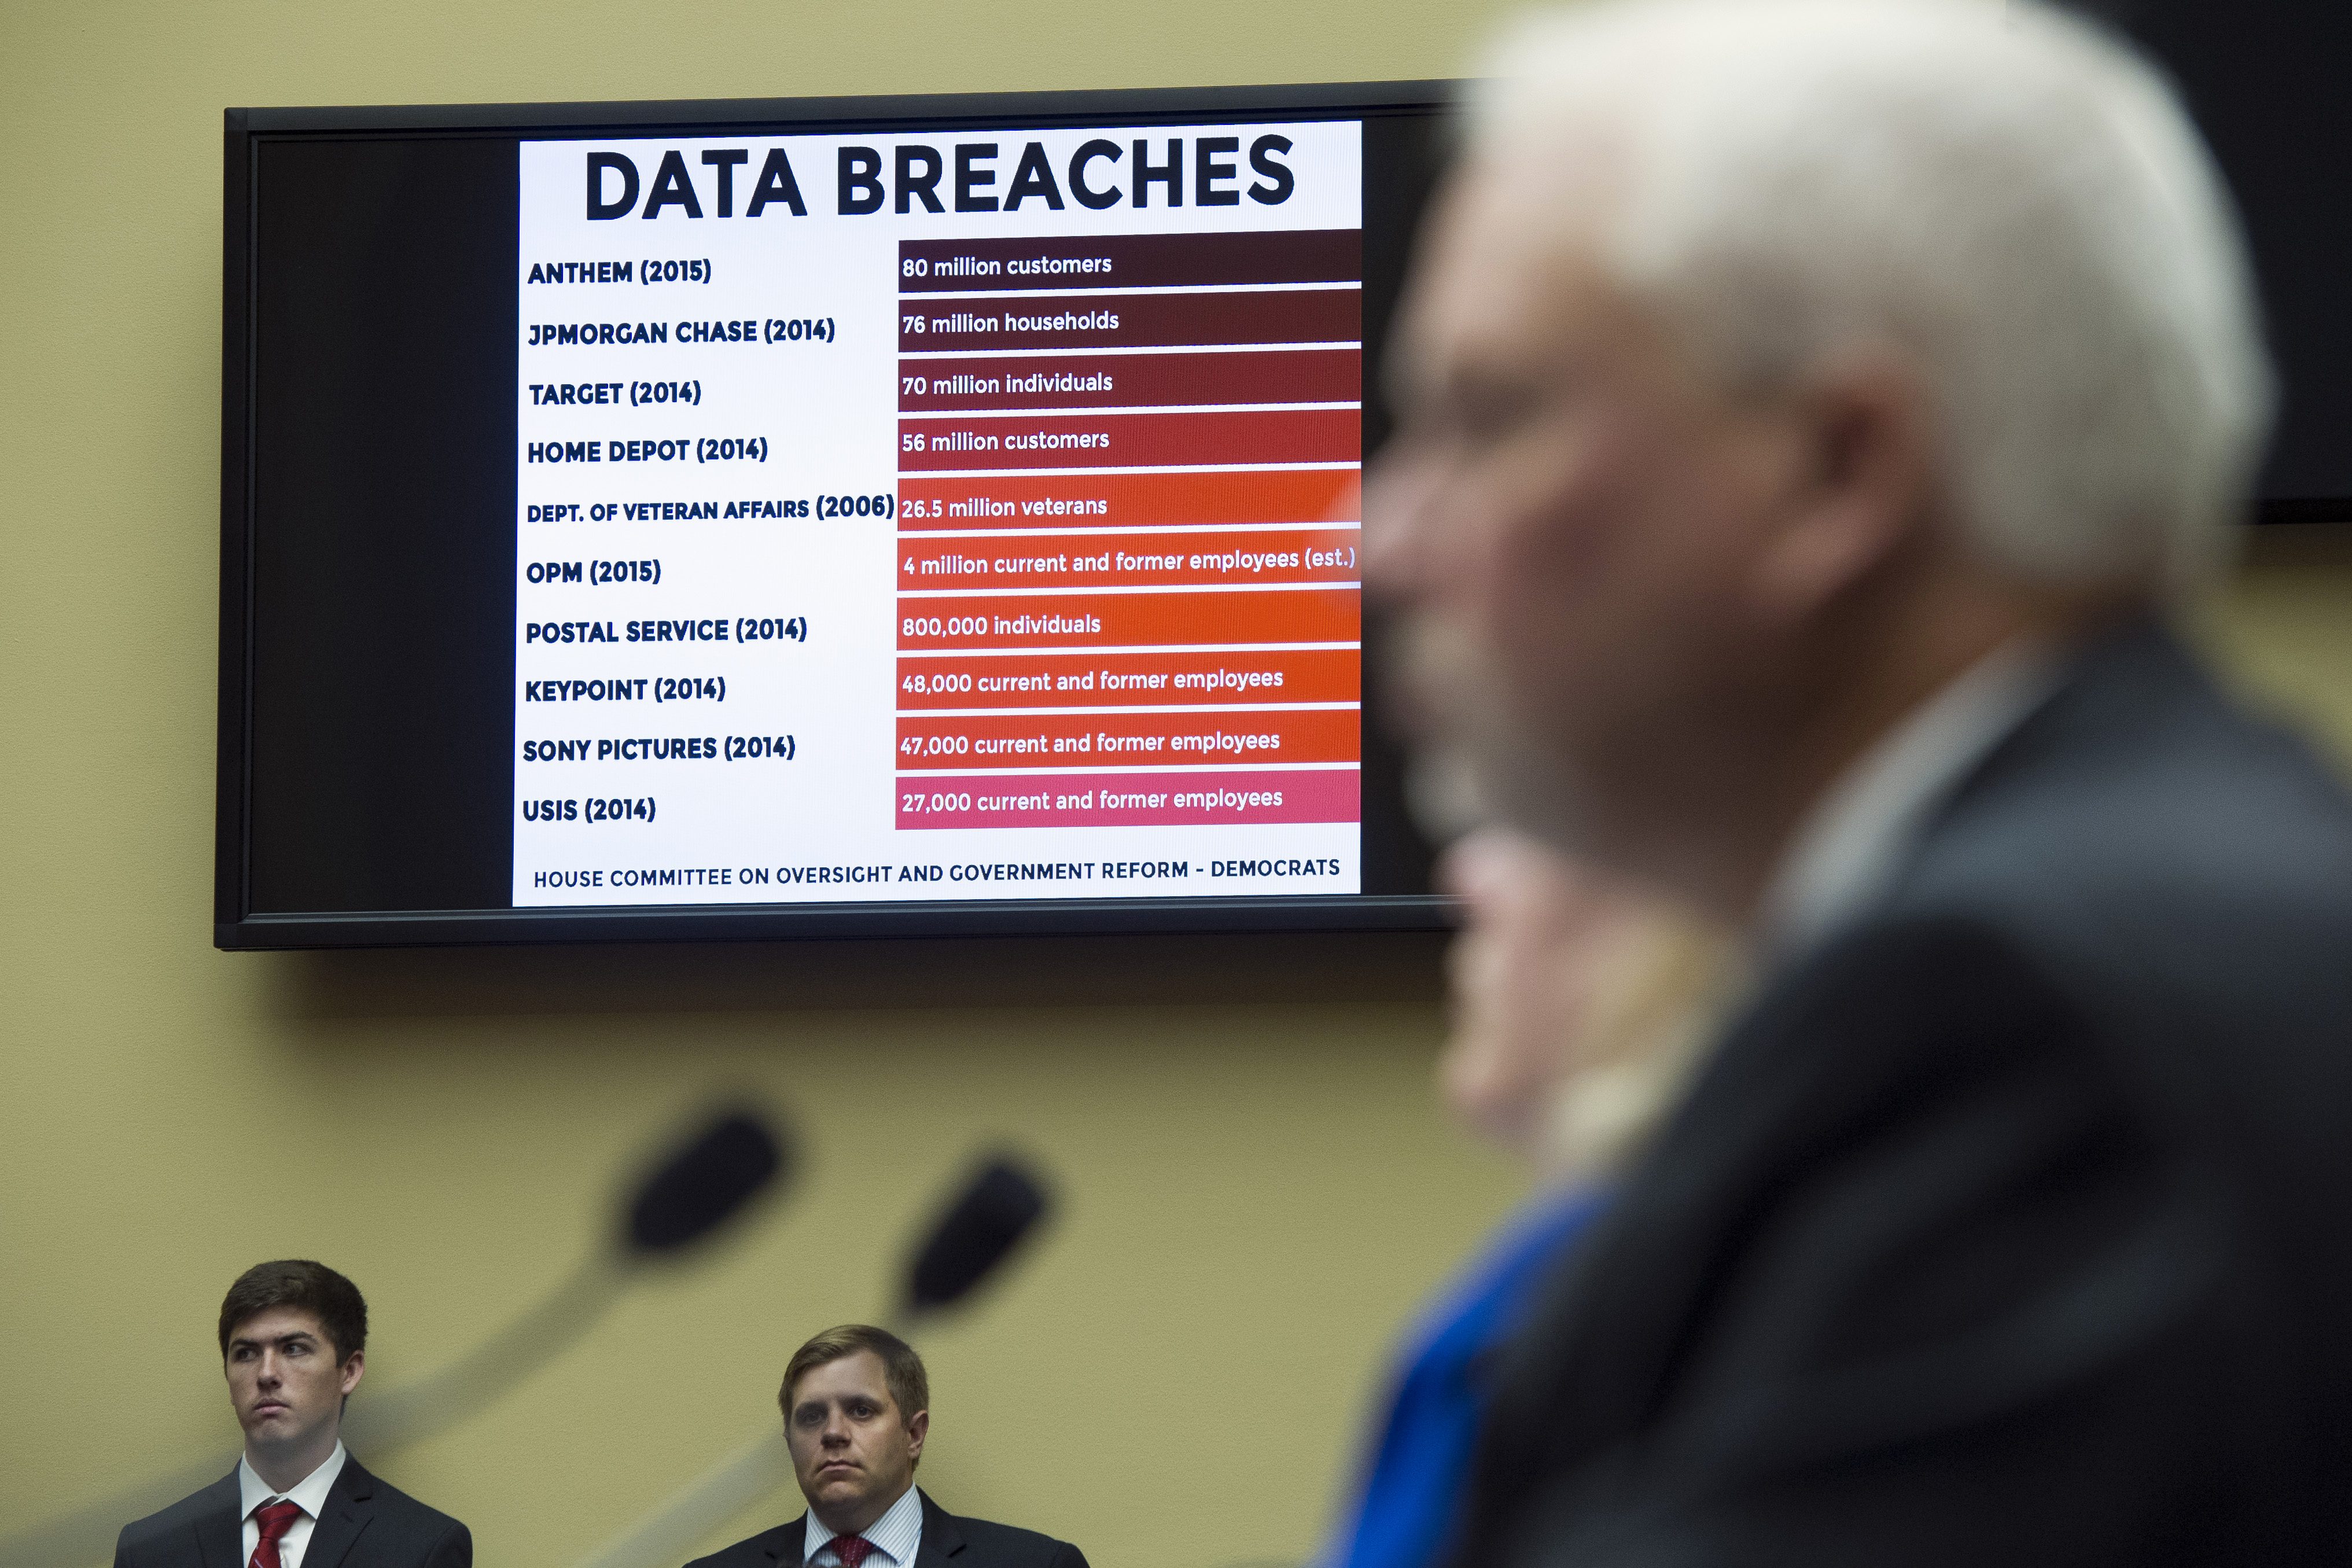 Data breaches at federal agencies jumped 20 percent last year